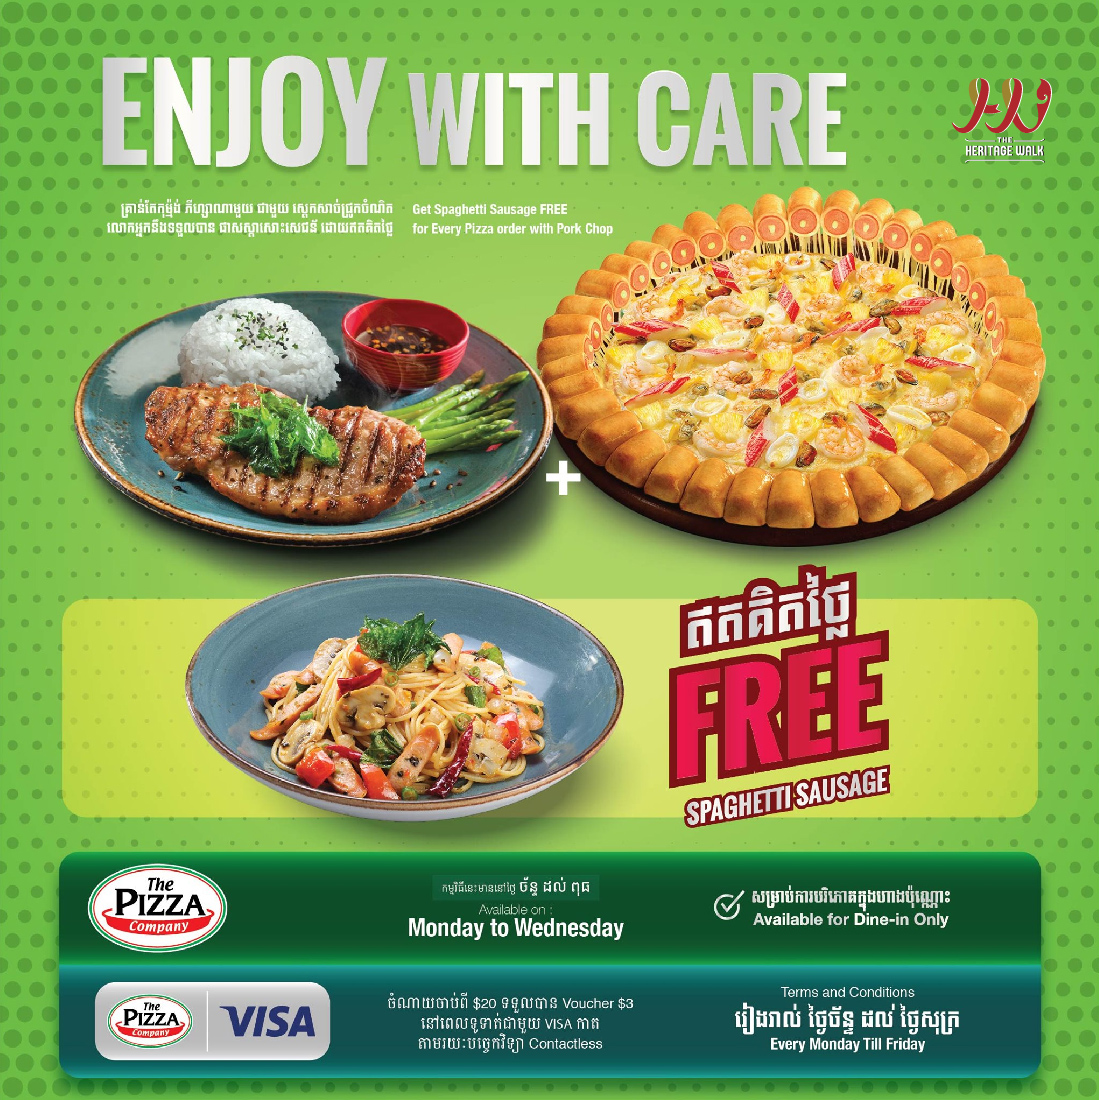 The Pizza Company – Enjoy with care